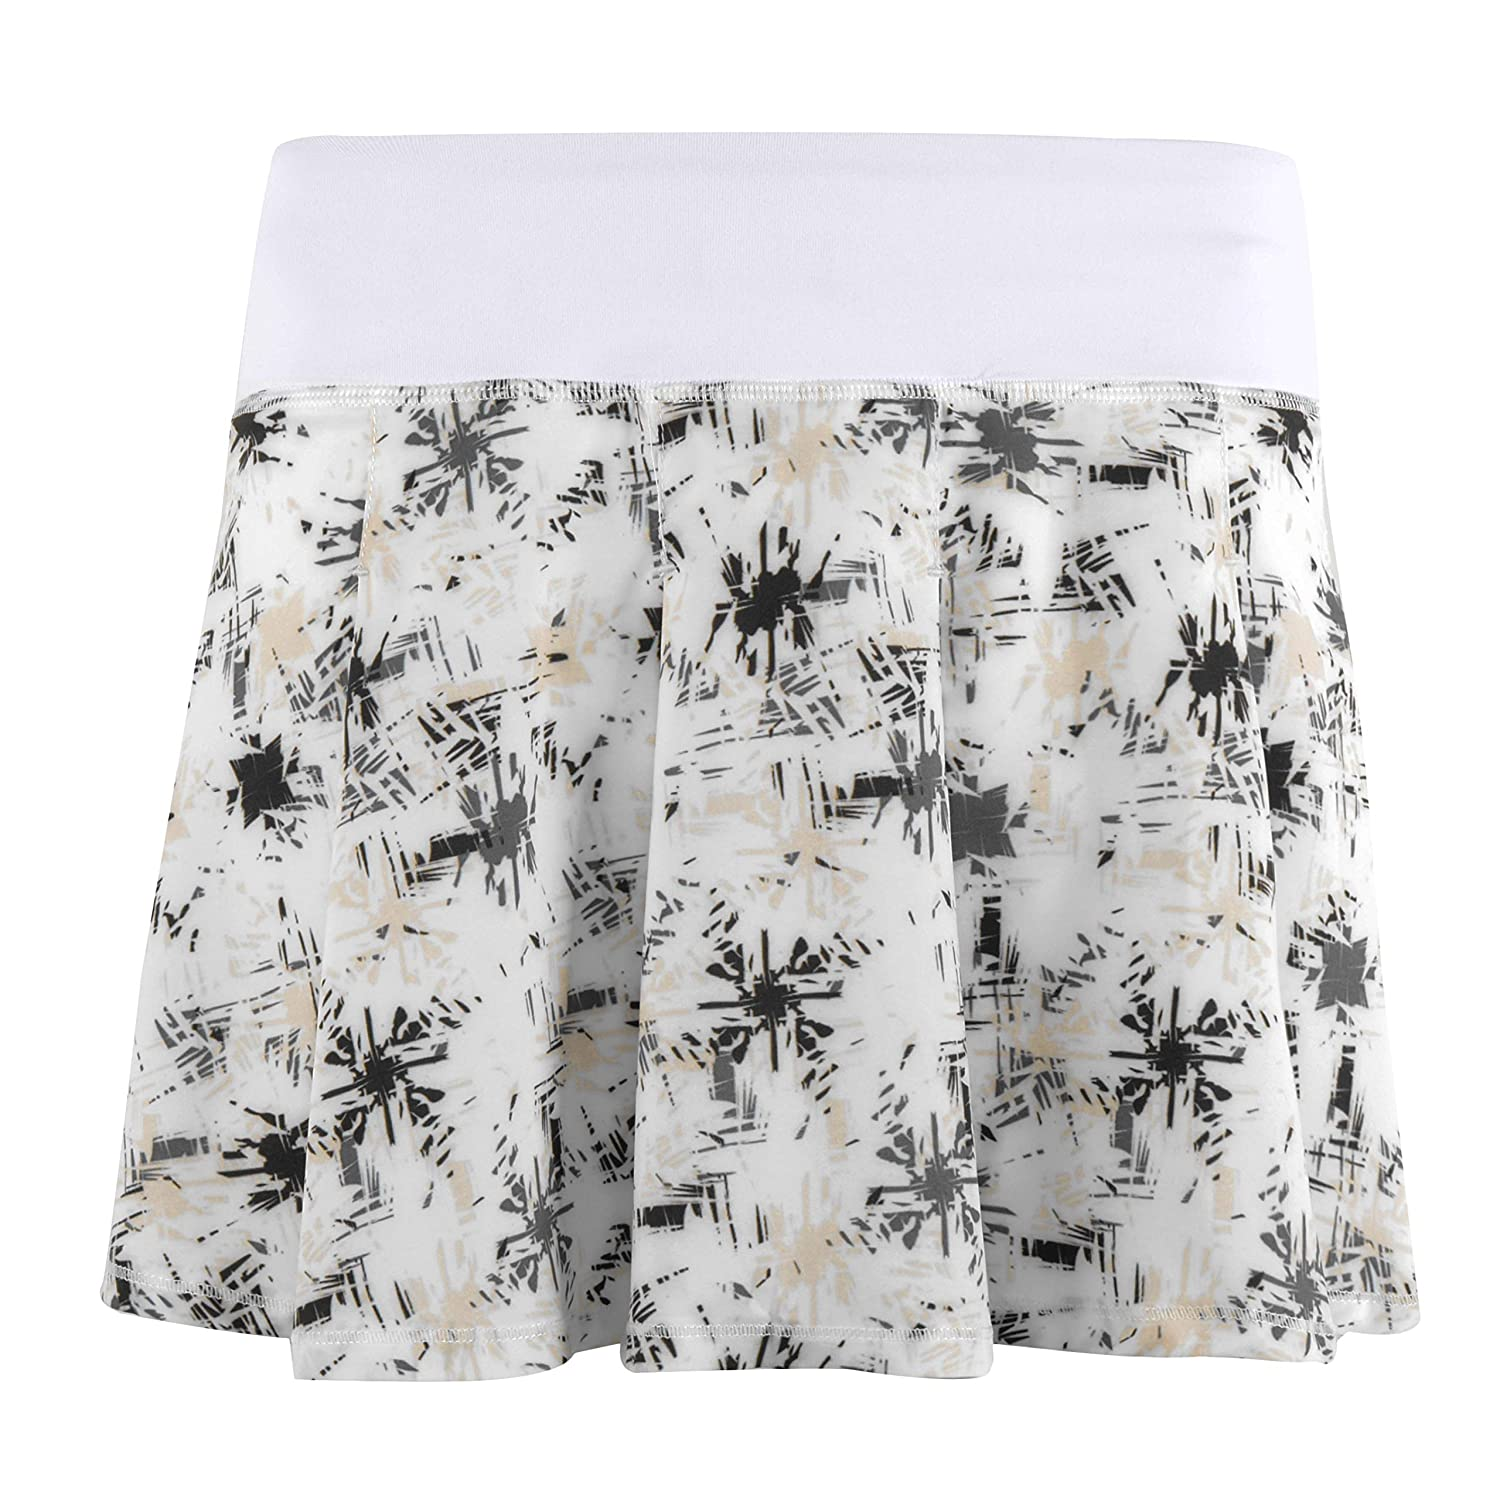 Cityoung SKIRT レディース Large Printed White B07GPN7KMD